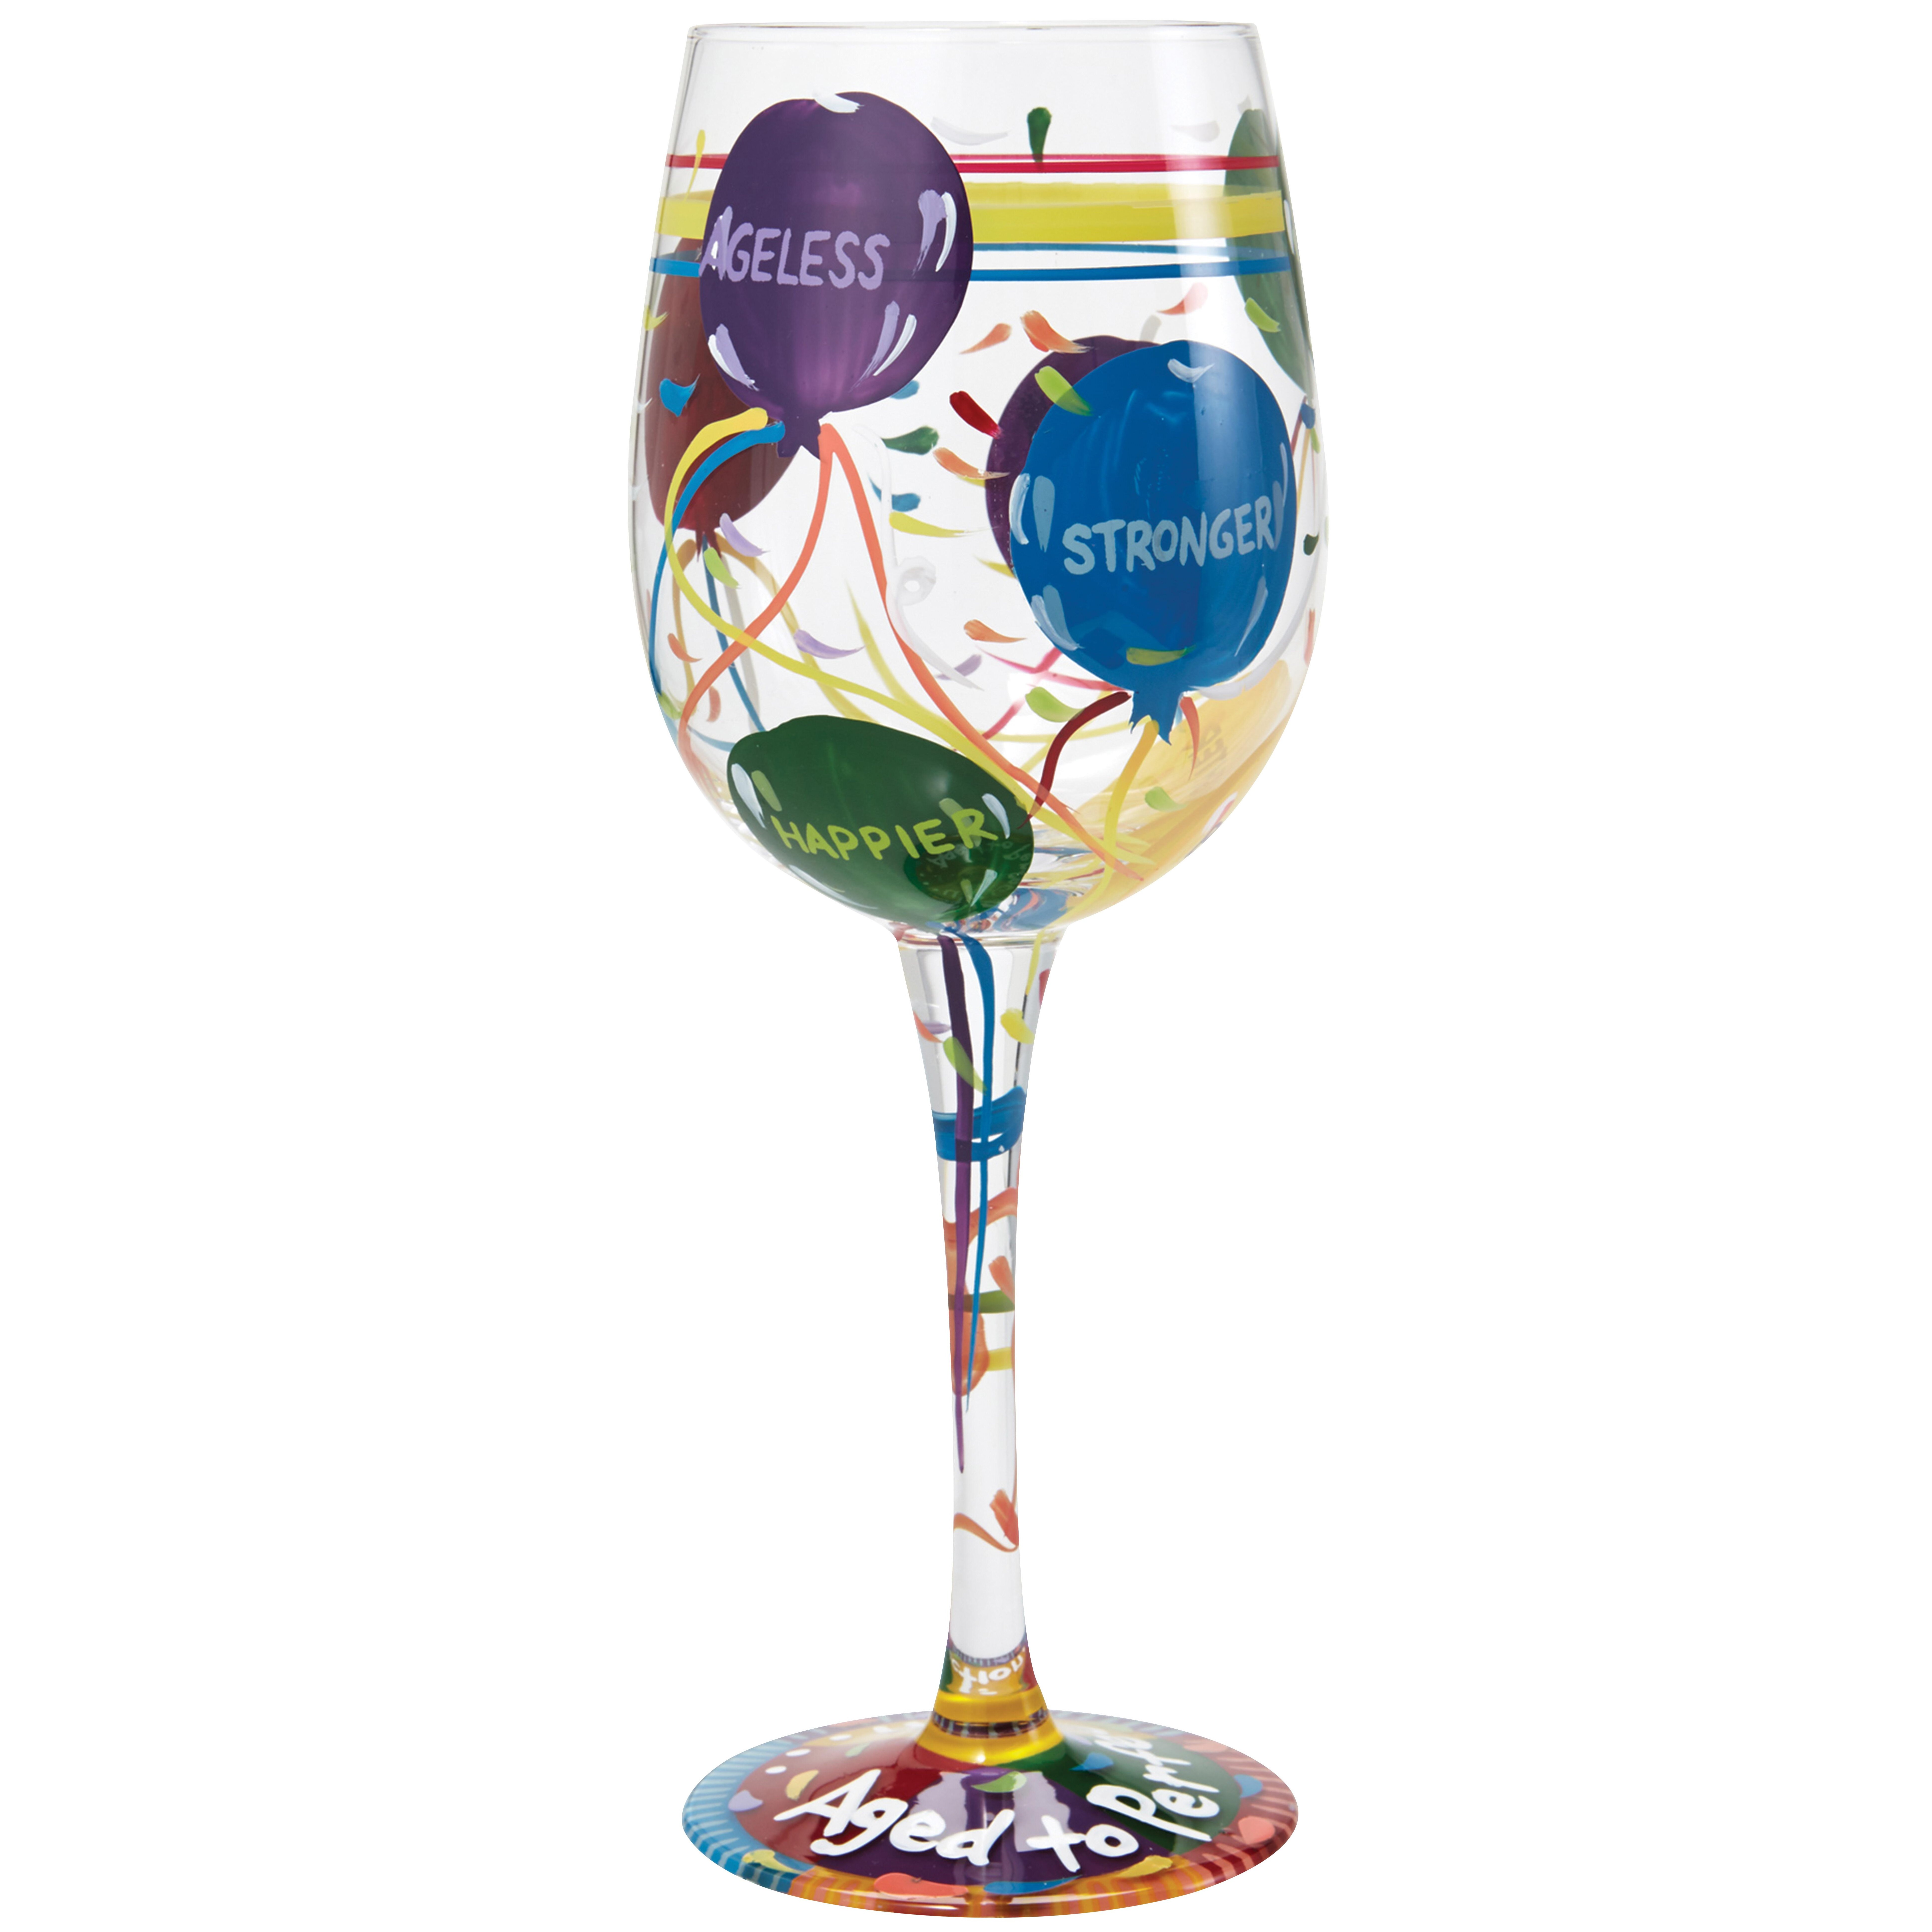 Lolita Aged To Perfection All Purpose Wine Glass Reviews